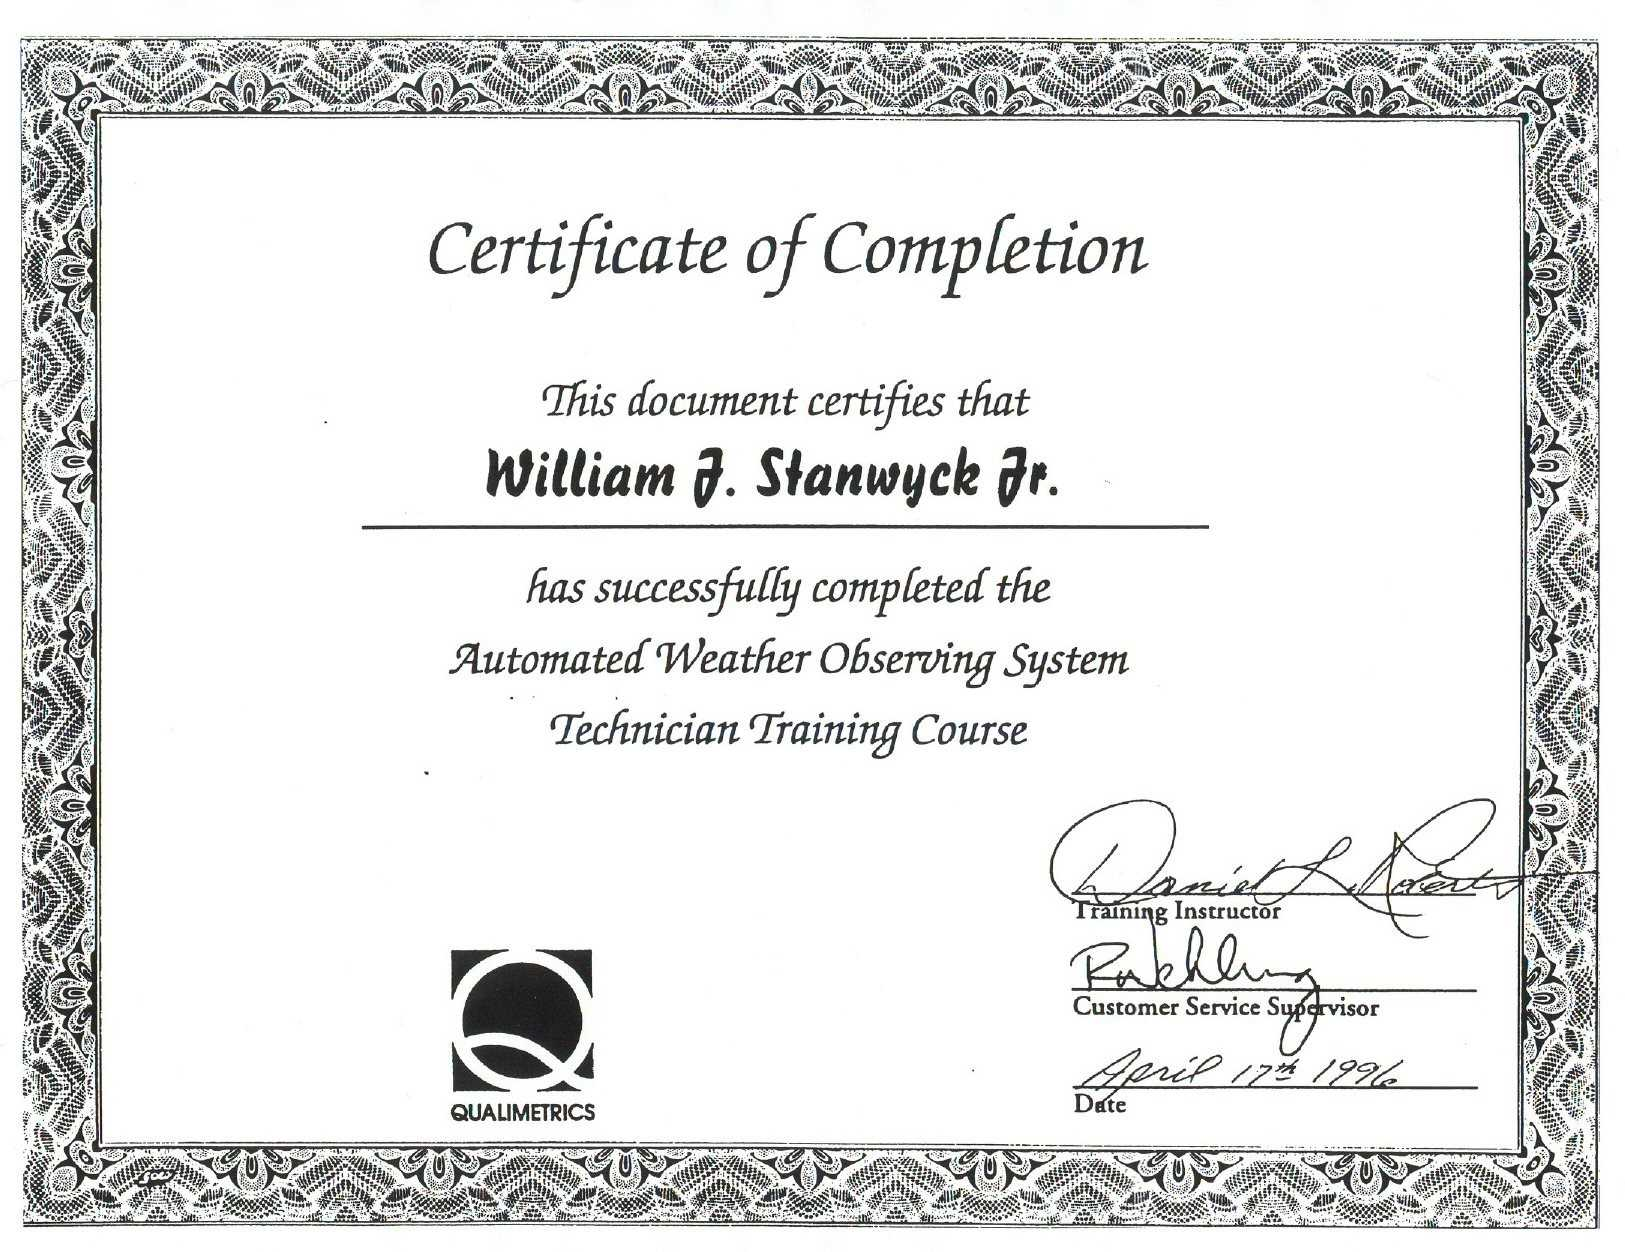 026 Template Ideas Certificates Free Gift Certificate Makes Within This Certificate Entitles The Bearer To Template